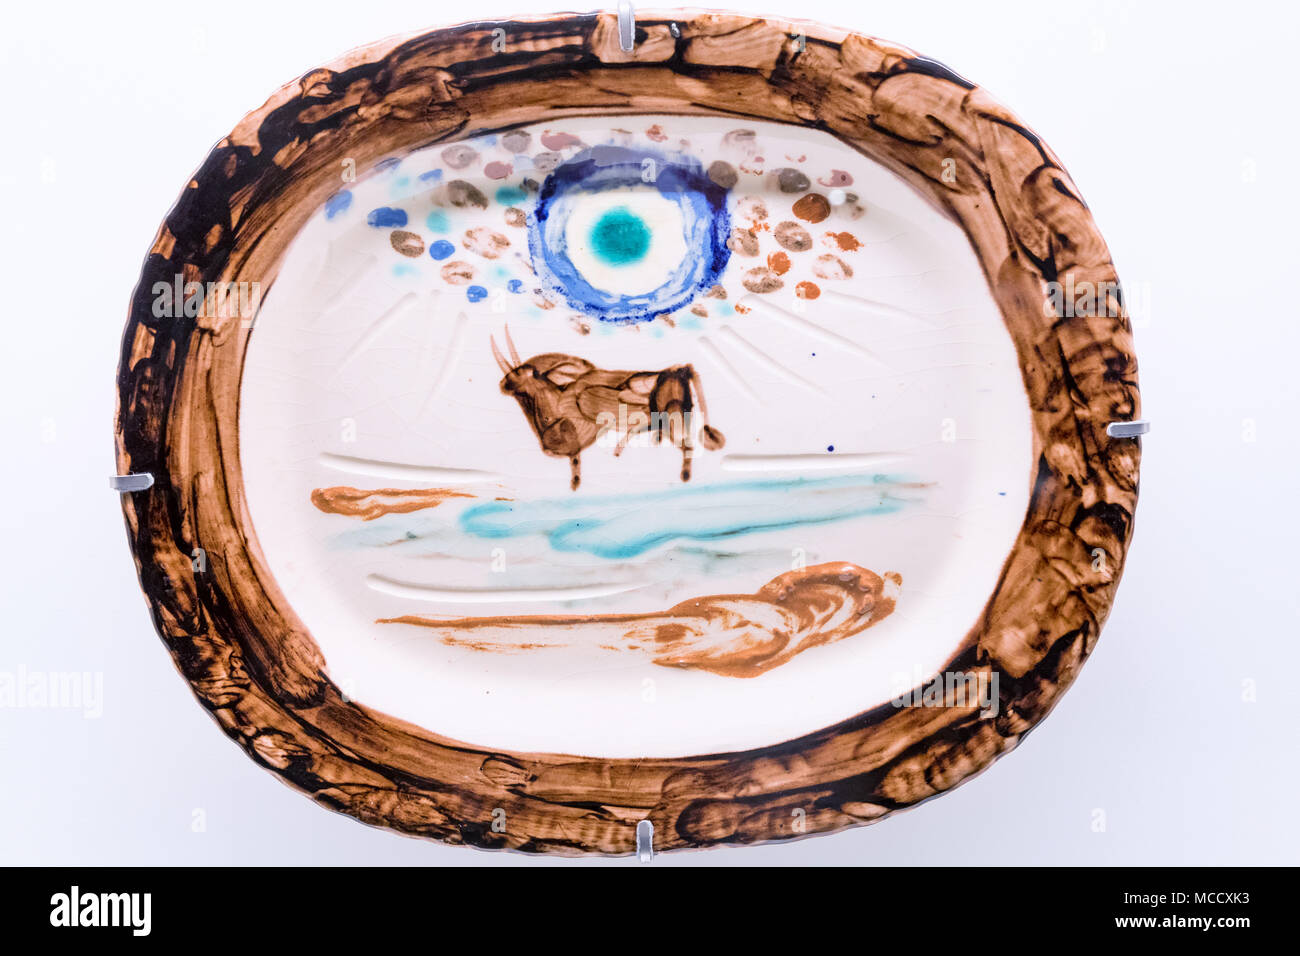 Ceramic made by Pablo Picasso, Louisiana Museum of Modern Art, Copenhagen Area, Denmark - Stock Image